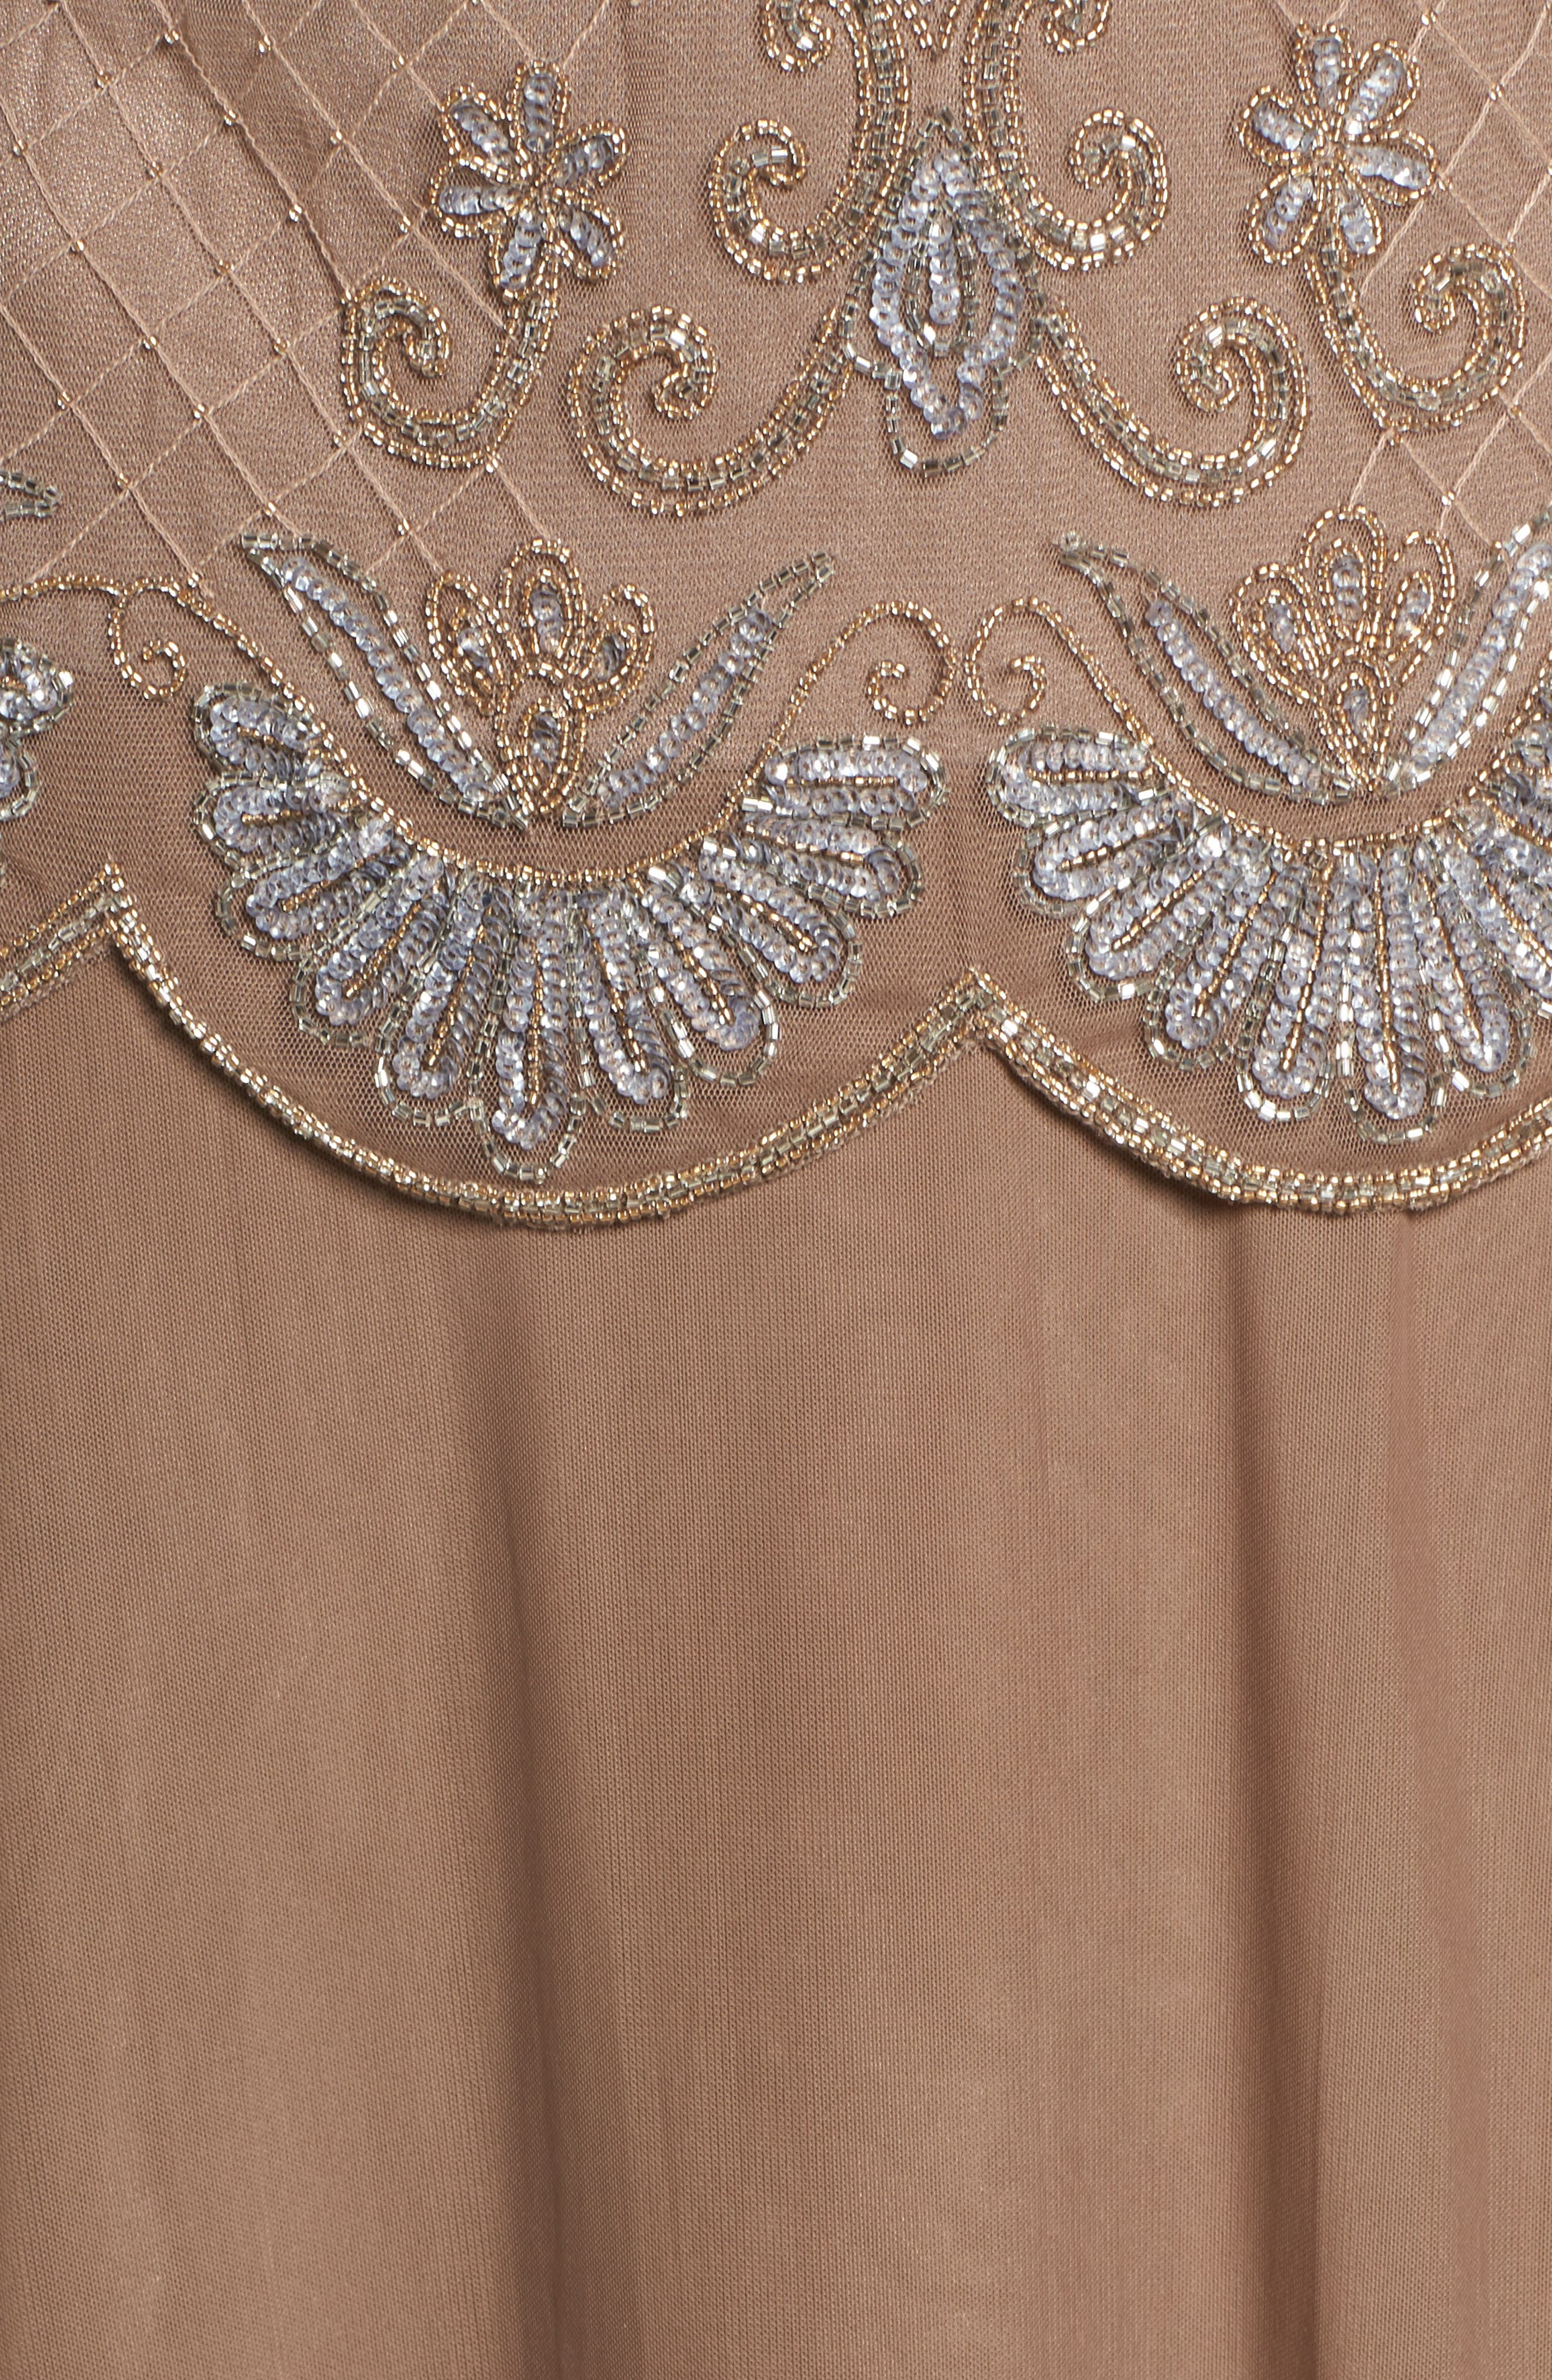 Embellished Mock Two-Piece Gown,                             Alternate thumbnail 5, color,                             230